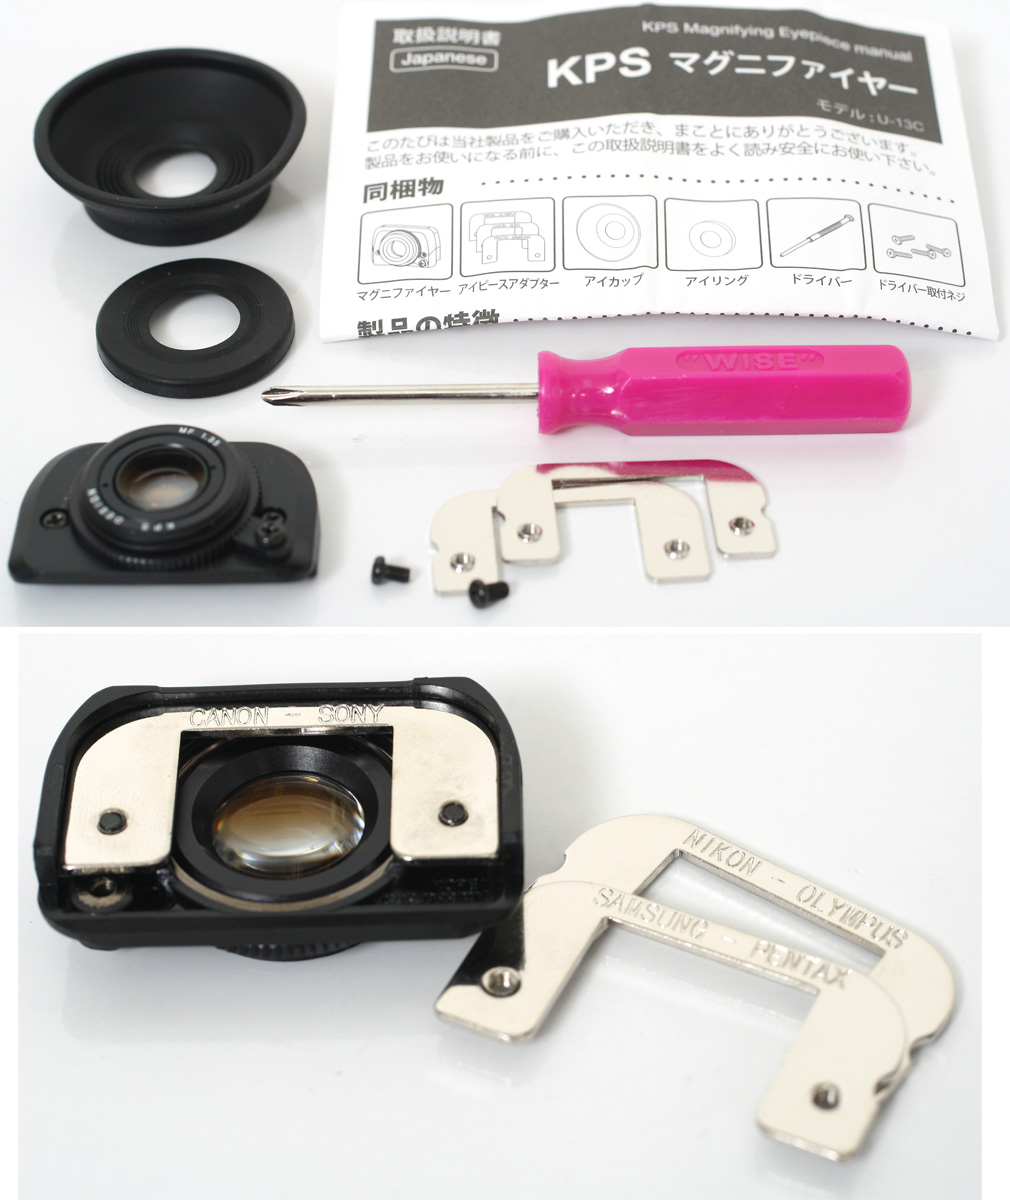 "KPS U-13C マグニファイイングアイピース Magnifying Eyepiece ""shipment fs3gm after the 1~3 business day"""